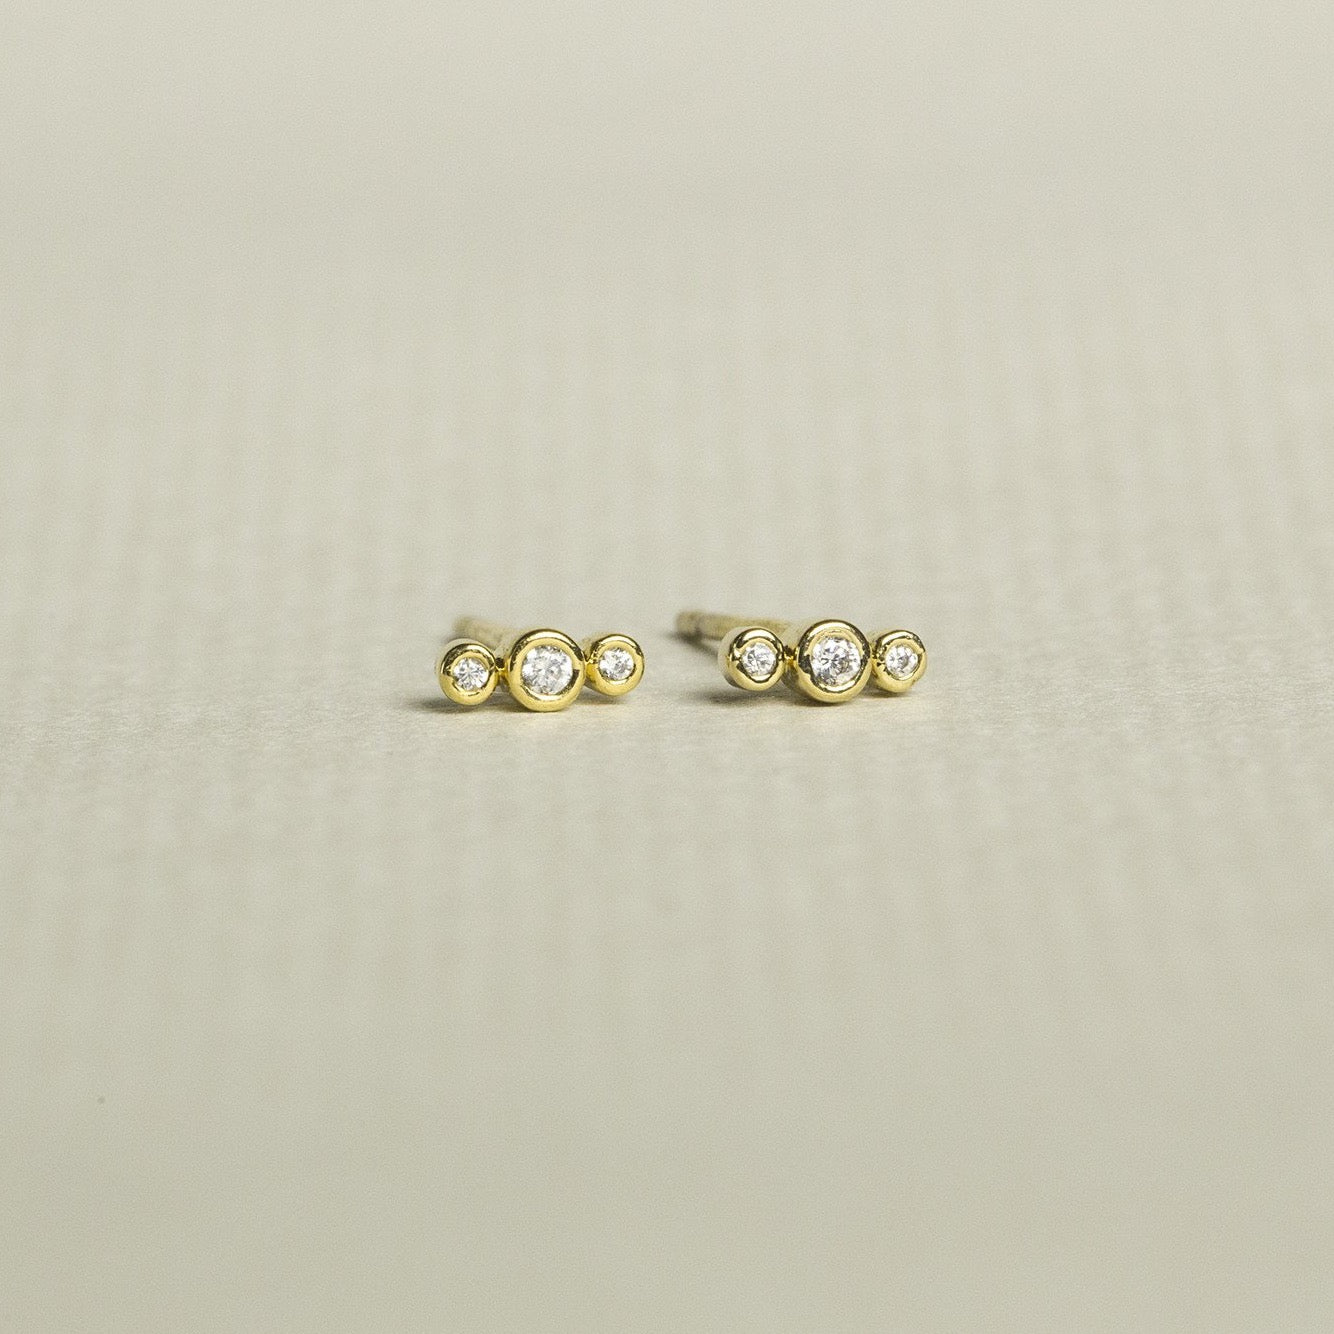 adorable satellite studs from Tai